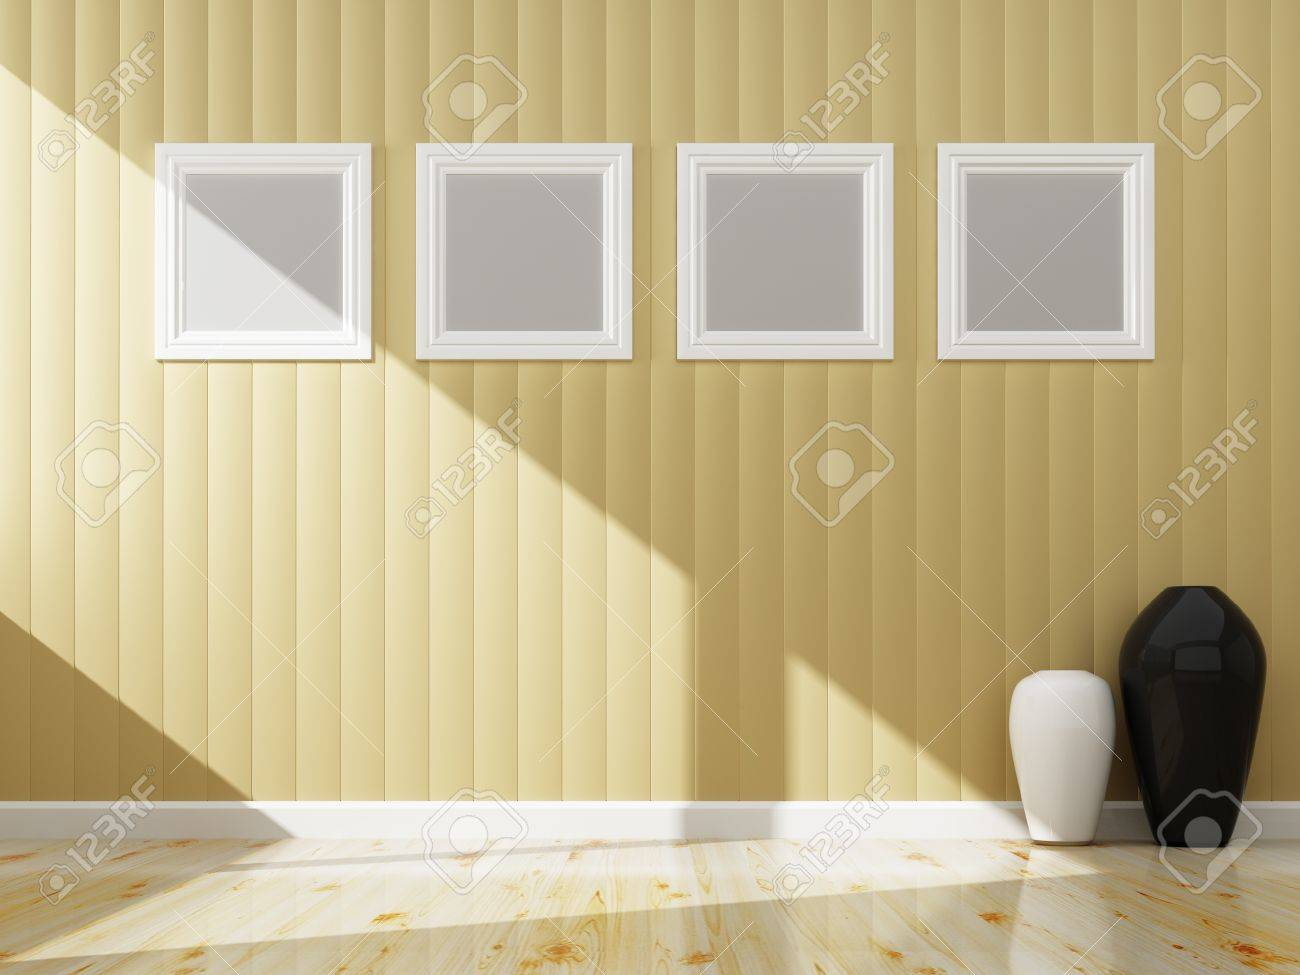 Cream Wall Color And White Frame Of Interior, 3d Rendering Stock ...